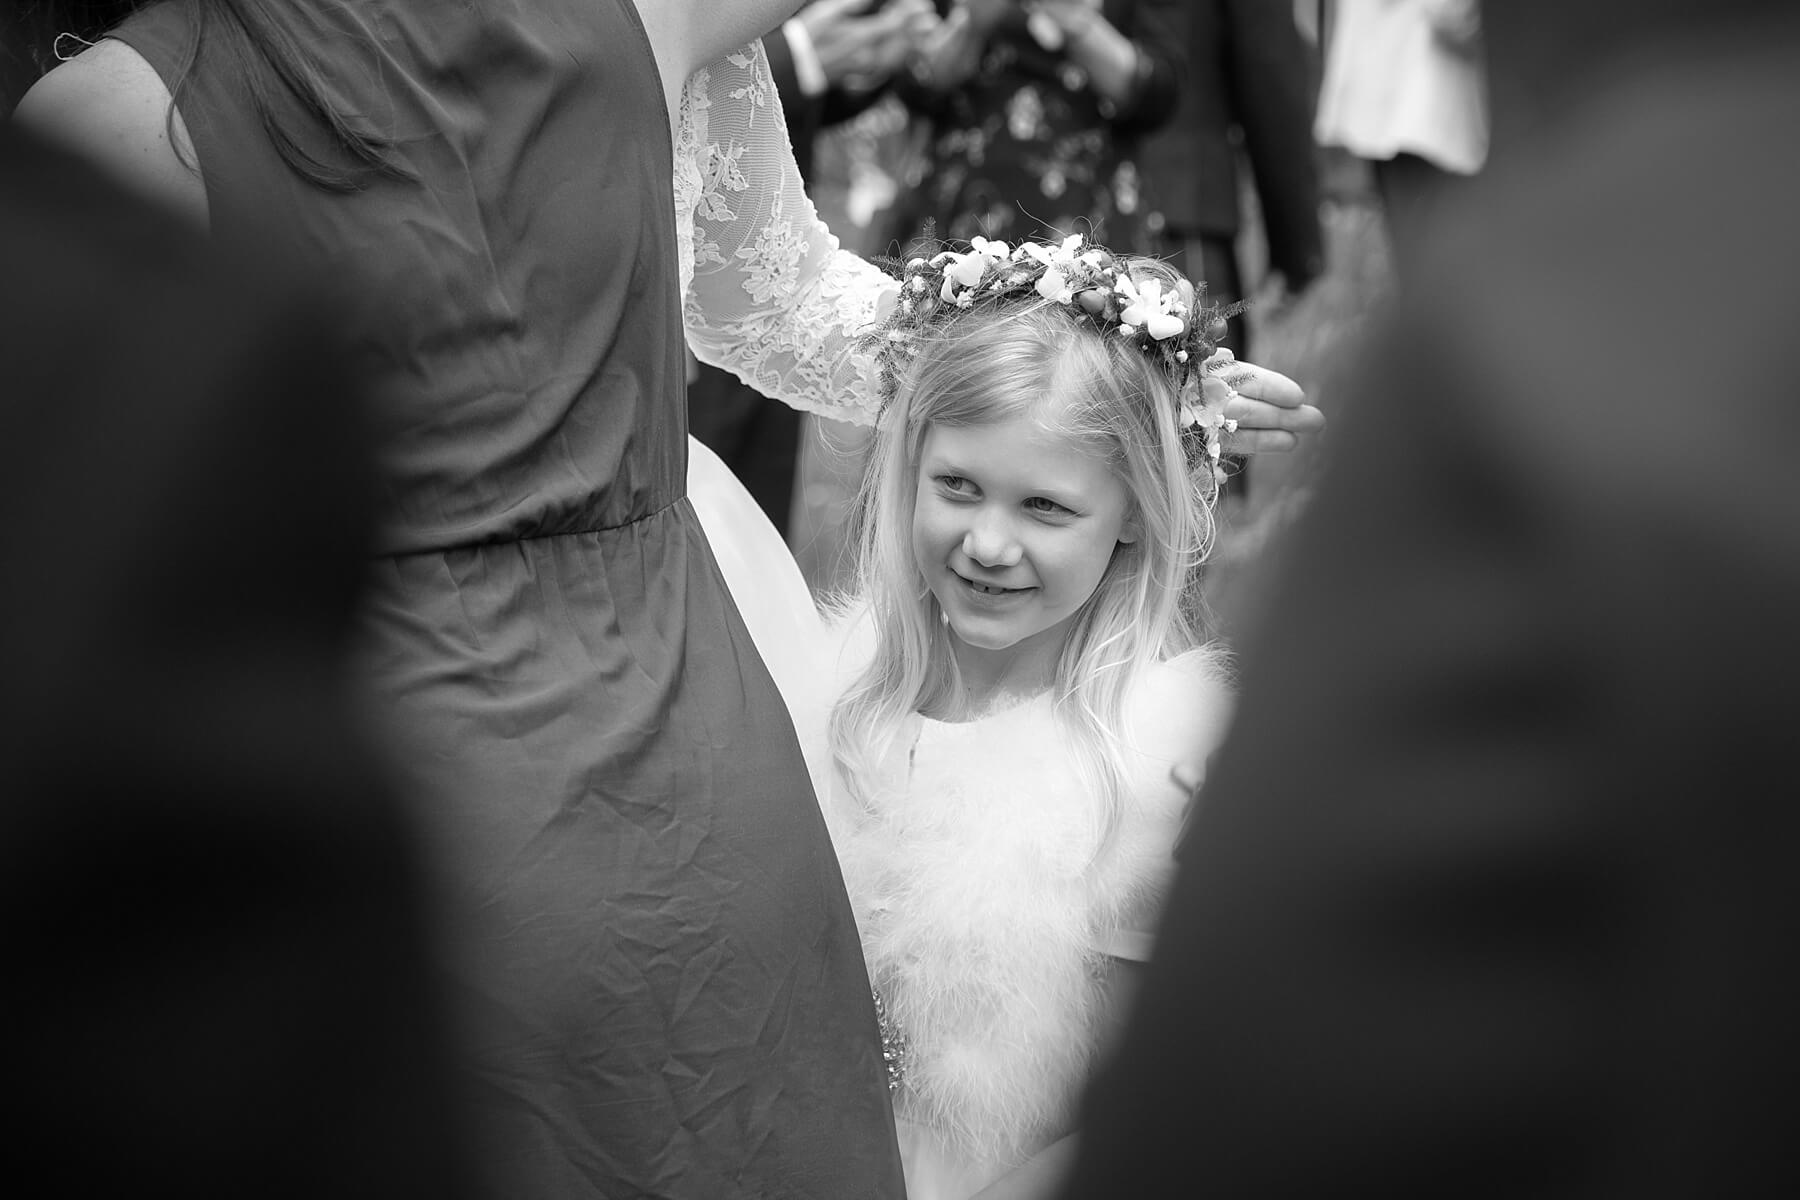 Drumtochty Castle wedding photography by Blue Sky Photography